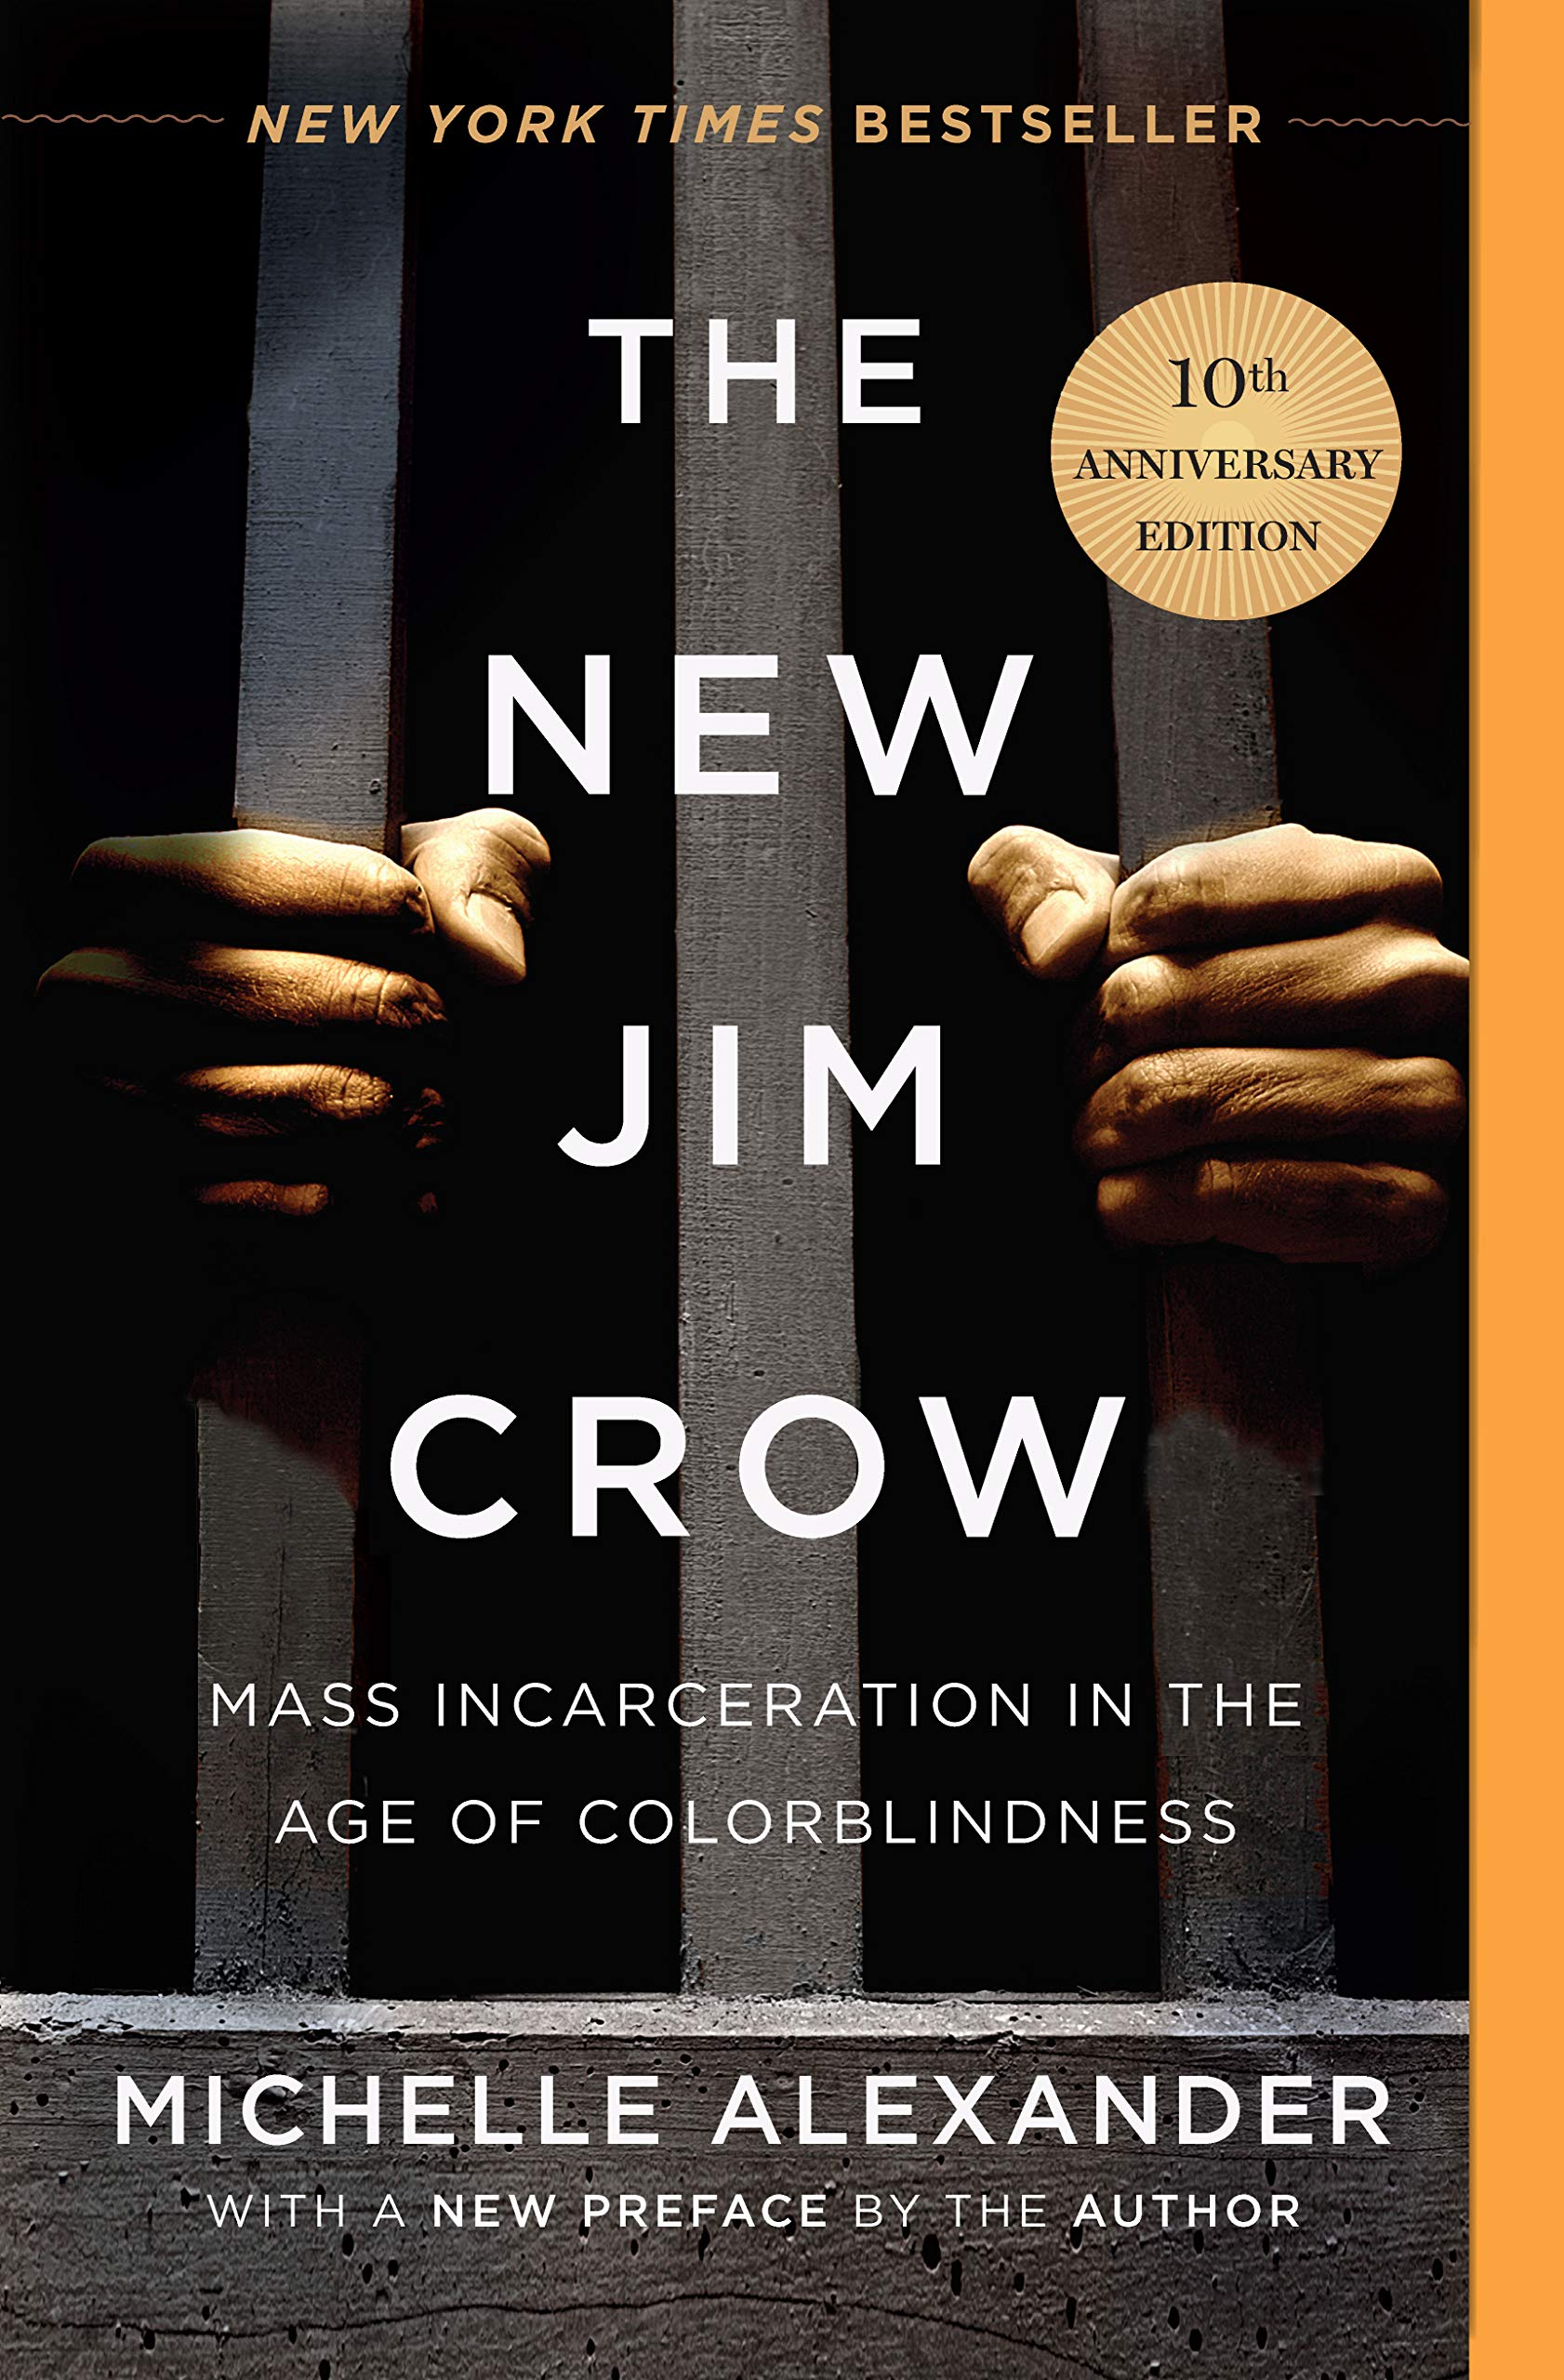 The New Jim Crow Mass Incarceration In The Age Of Colorblindness 10th Anniversary Edition Alexander Michelle 9781620971932 Books